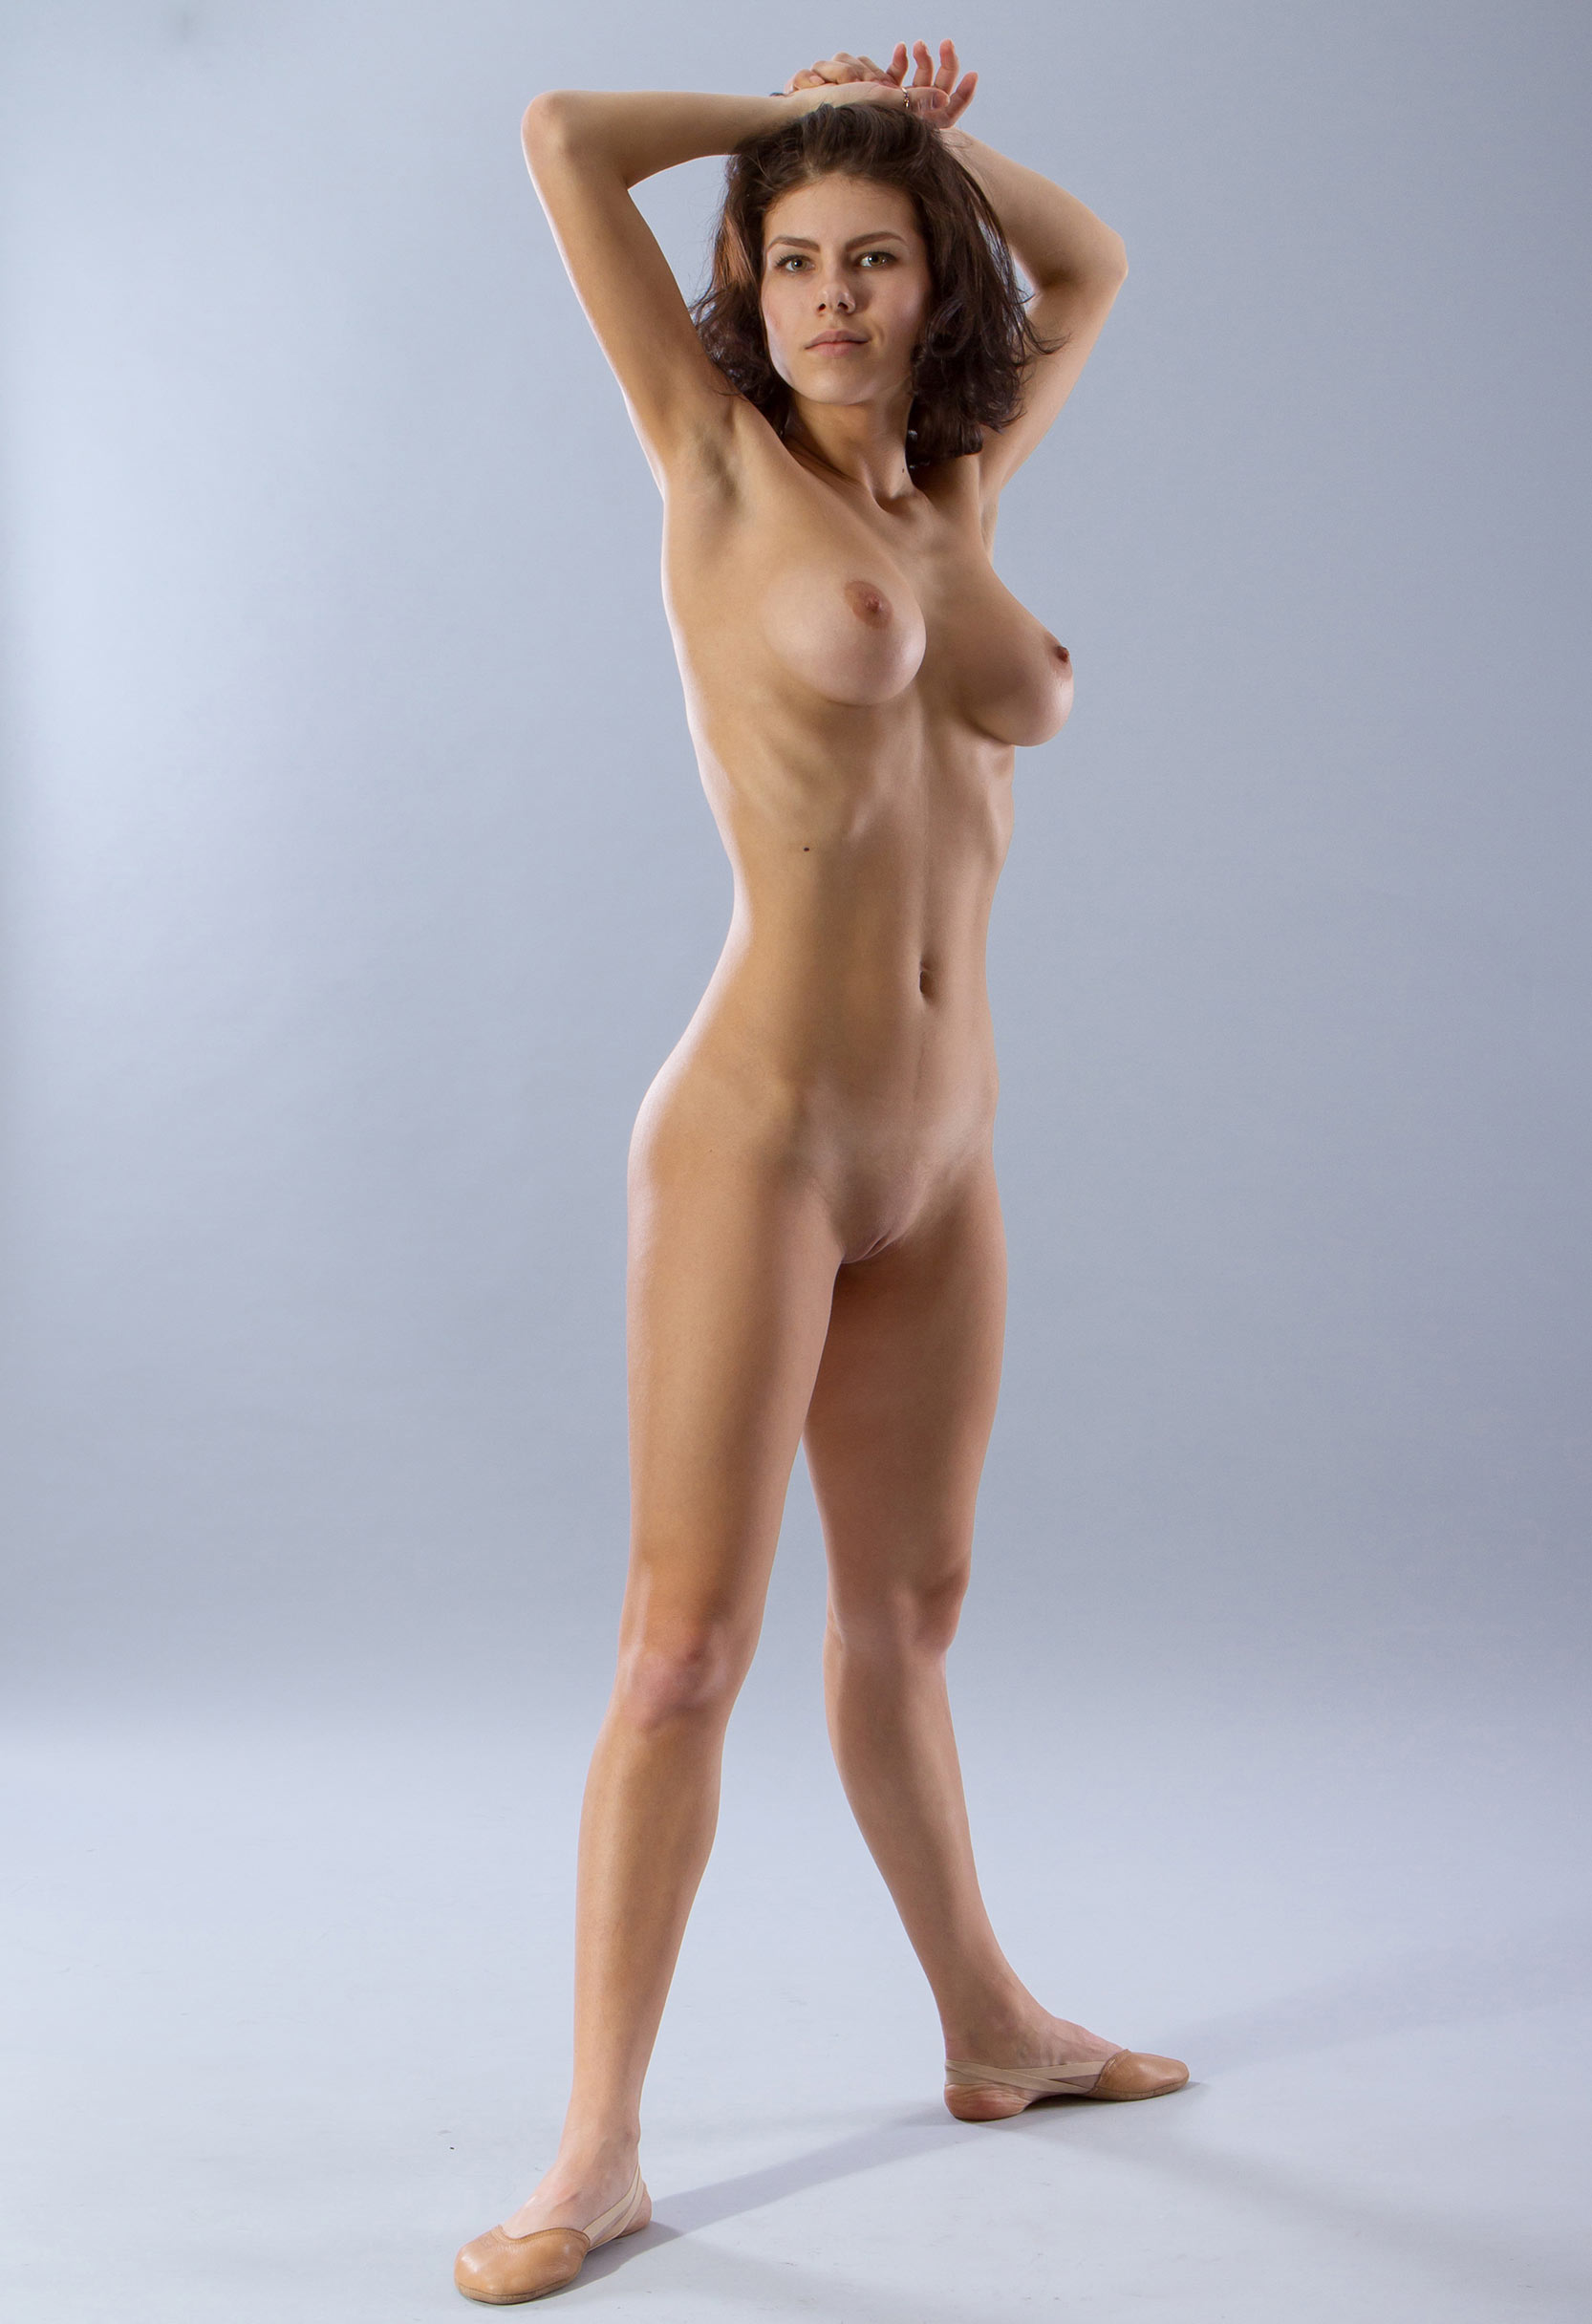 naked girl standing up video